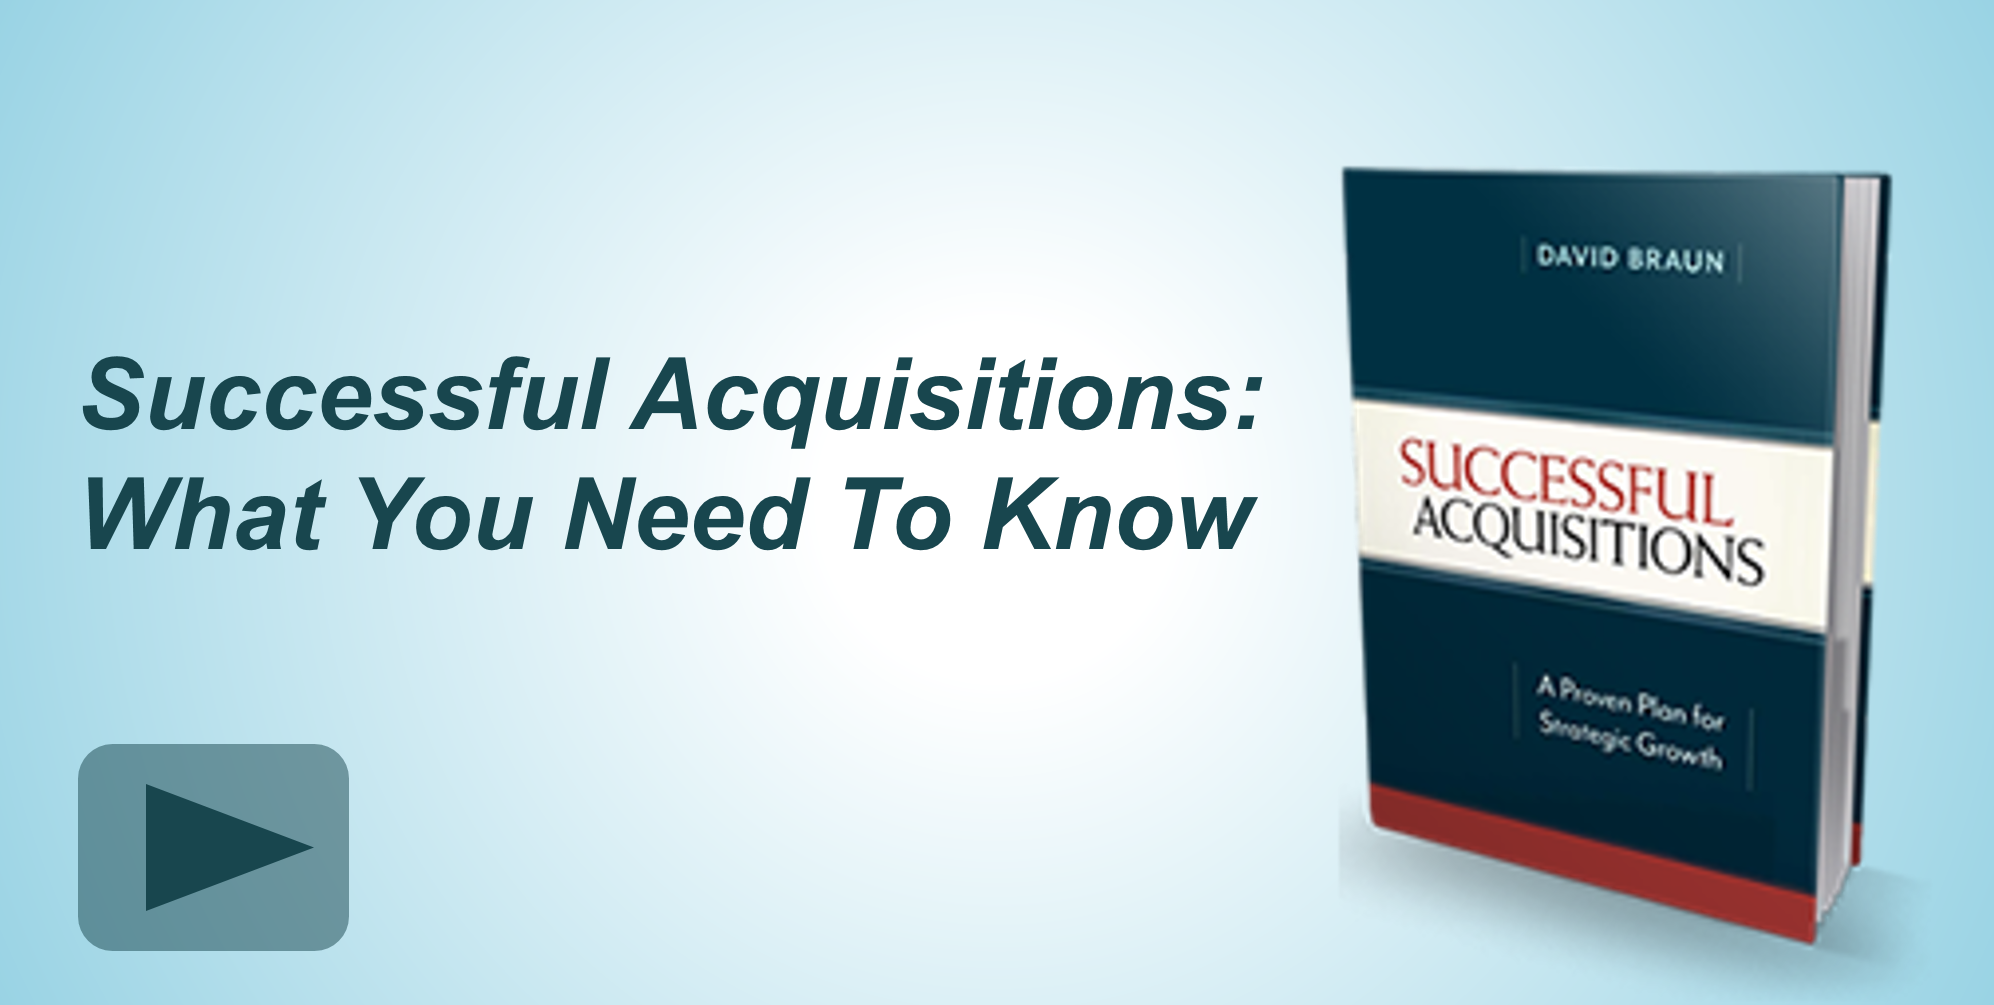 Access the Successful Acquisitions video series.